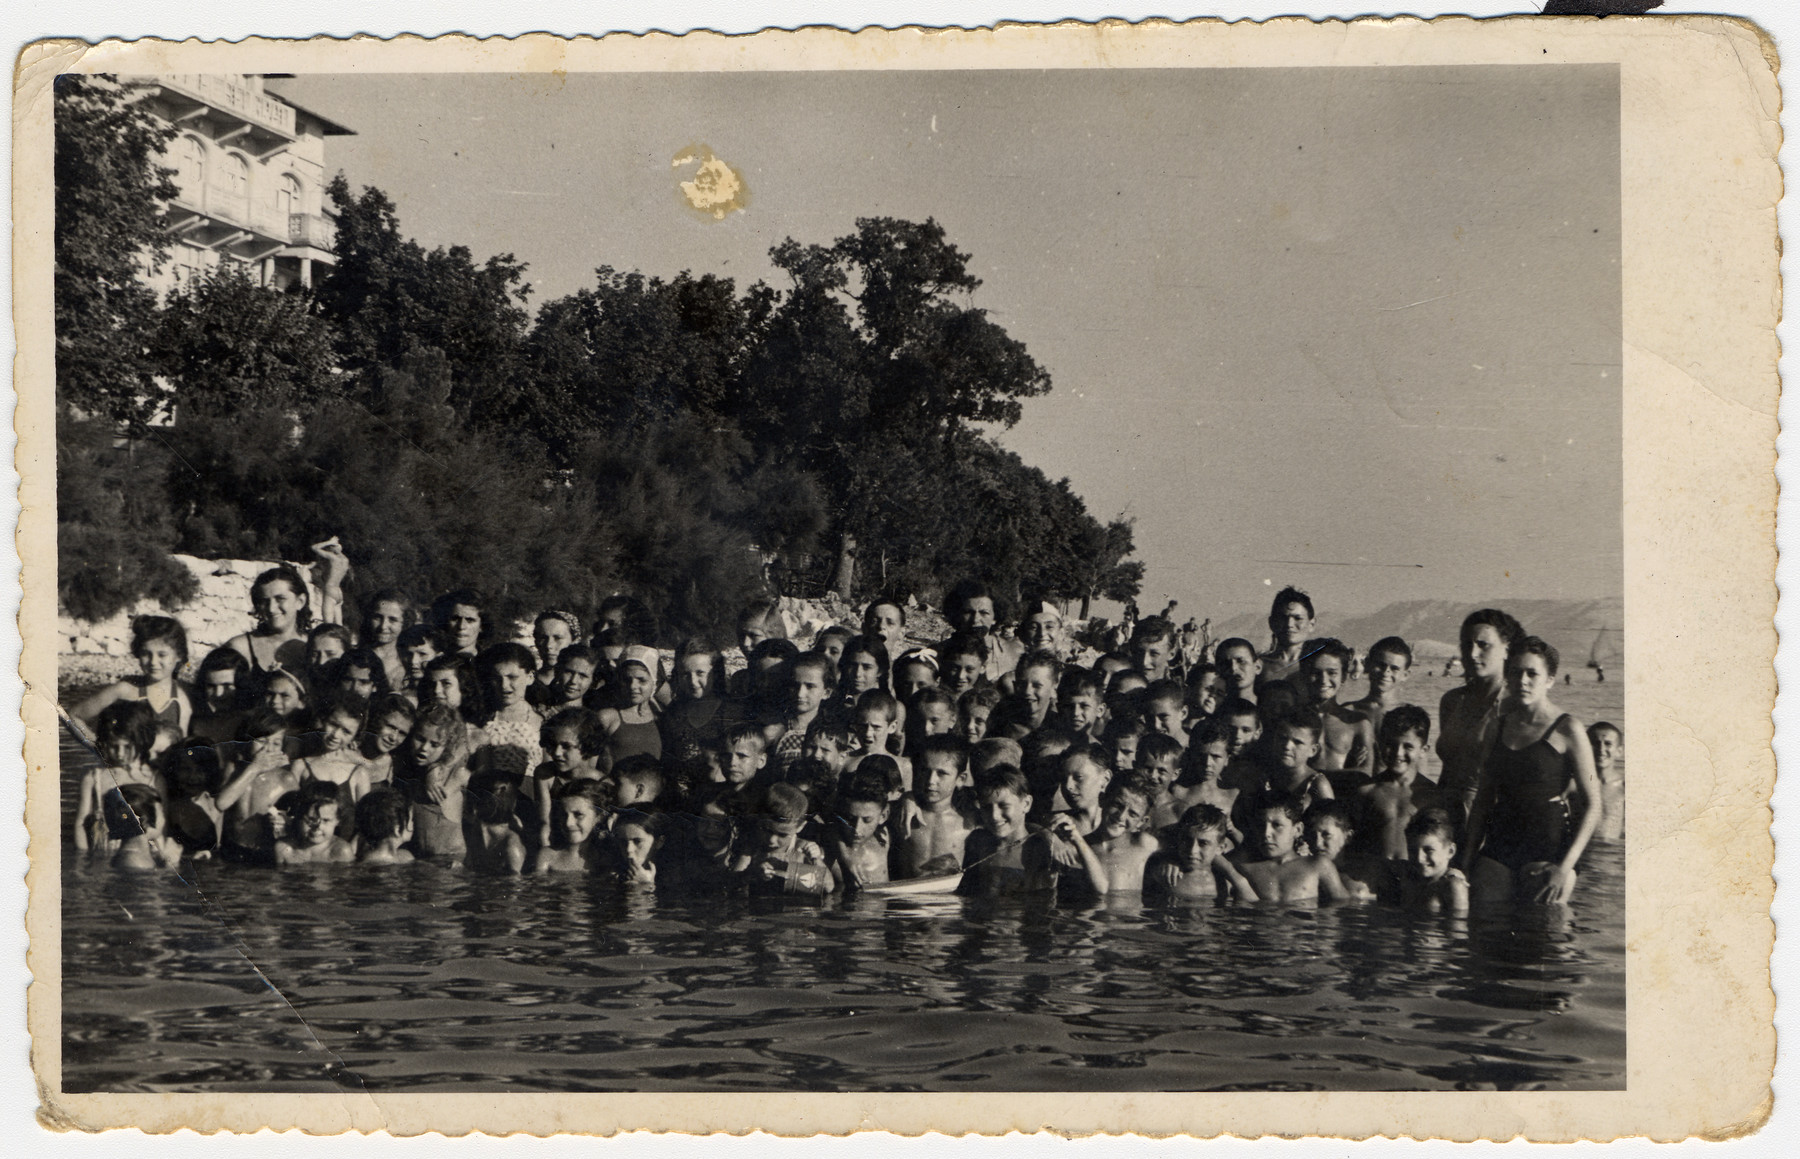 Children in a postwar Jewish summer camp pose for a group portrait in either a lake or the sea.